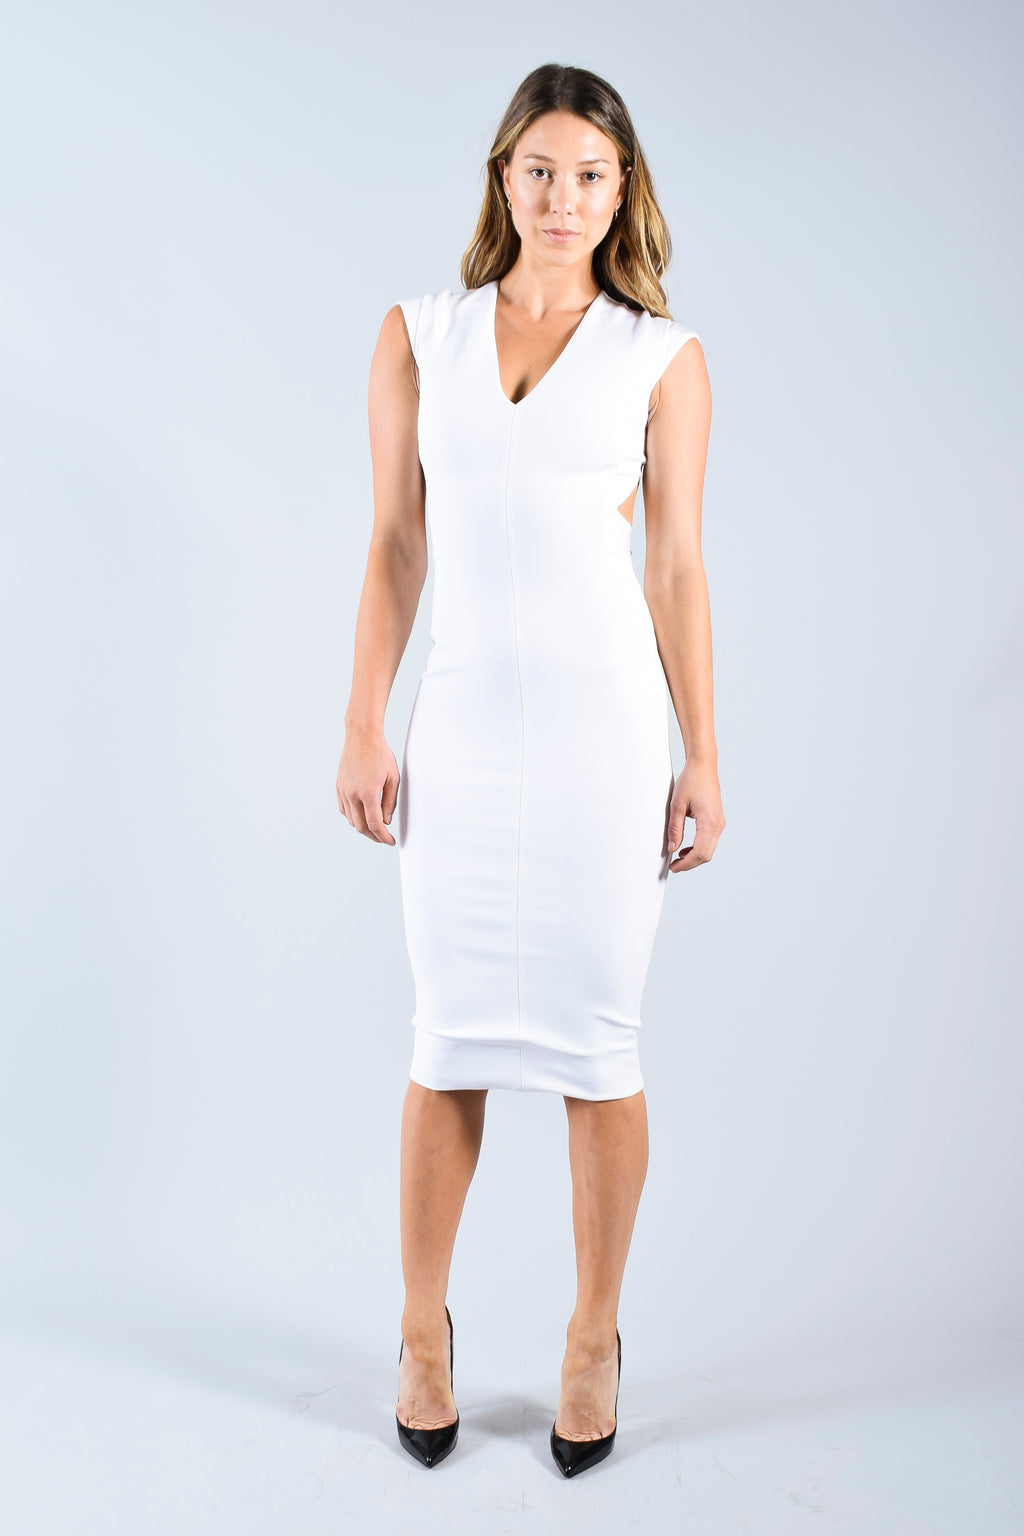 Victoria Beckham White Backless Dress Size 6